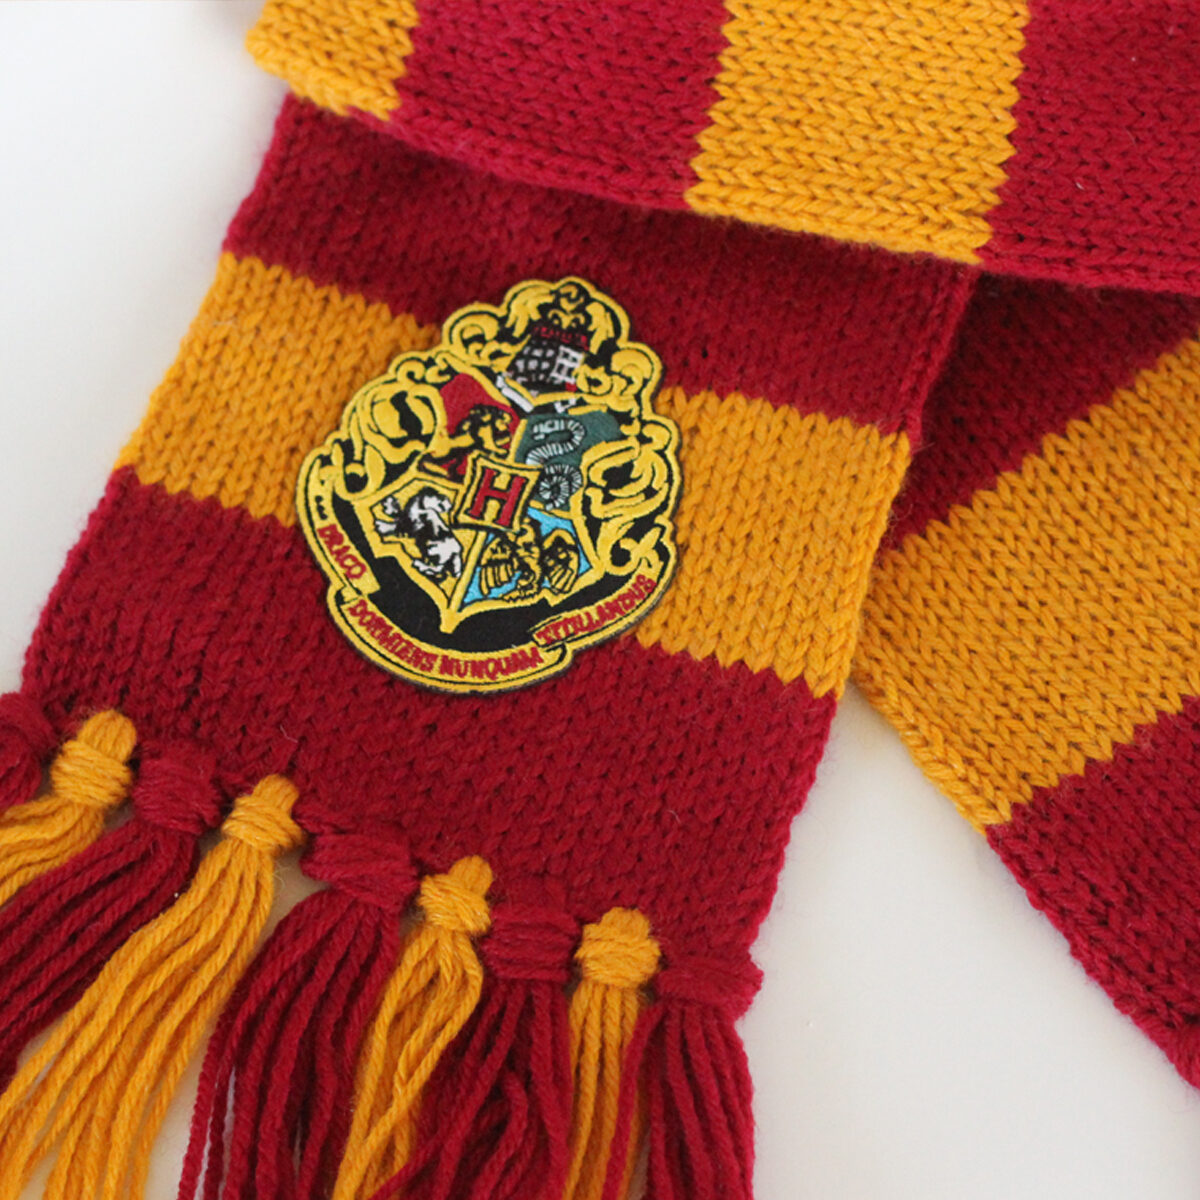 Harry Potter Knitted Scarf in Burgundy and Gold yarn colors with Hogwarts patch.